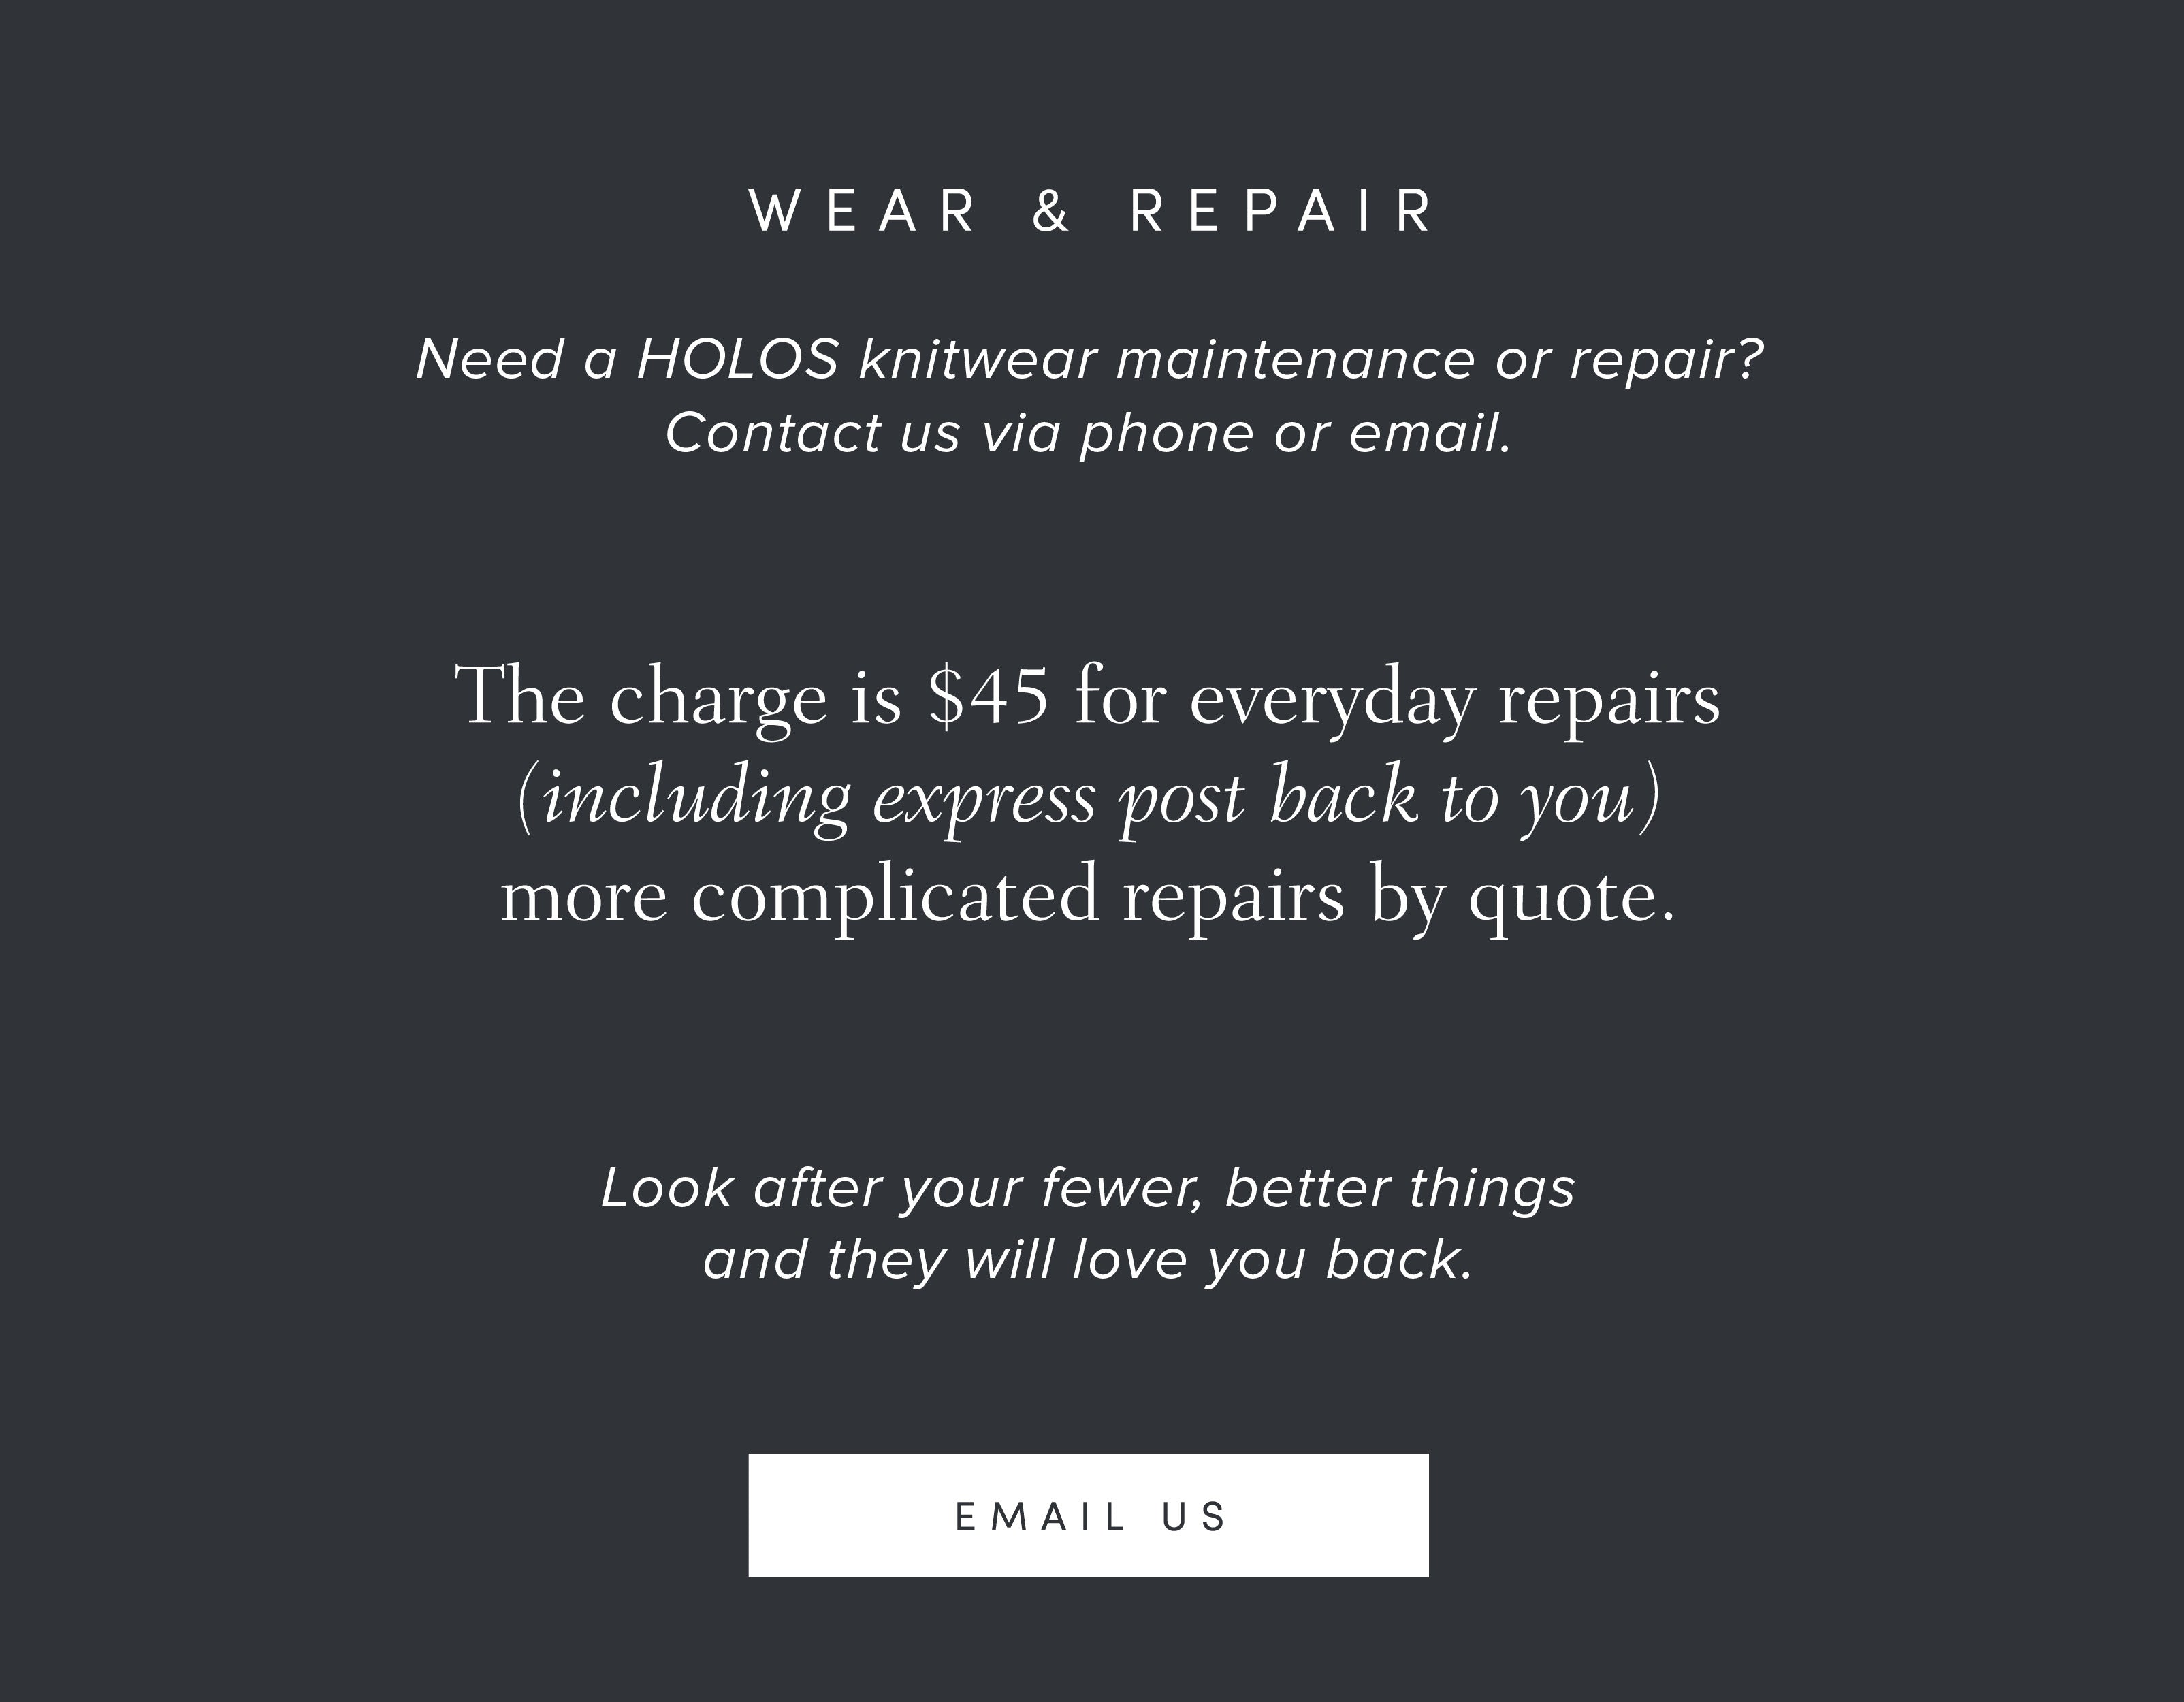 HOLOS knitwear repair message